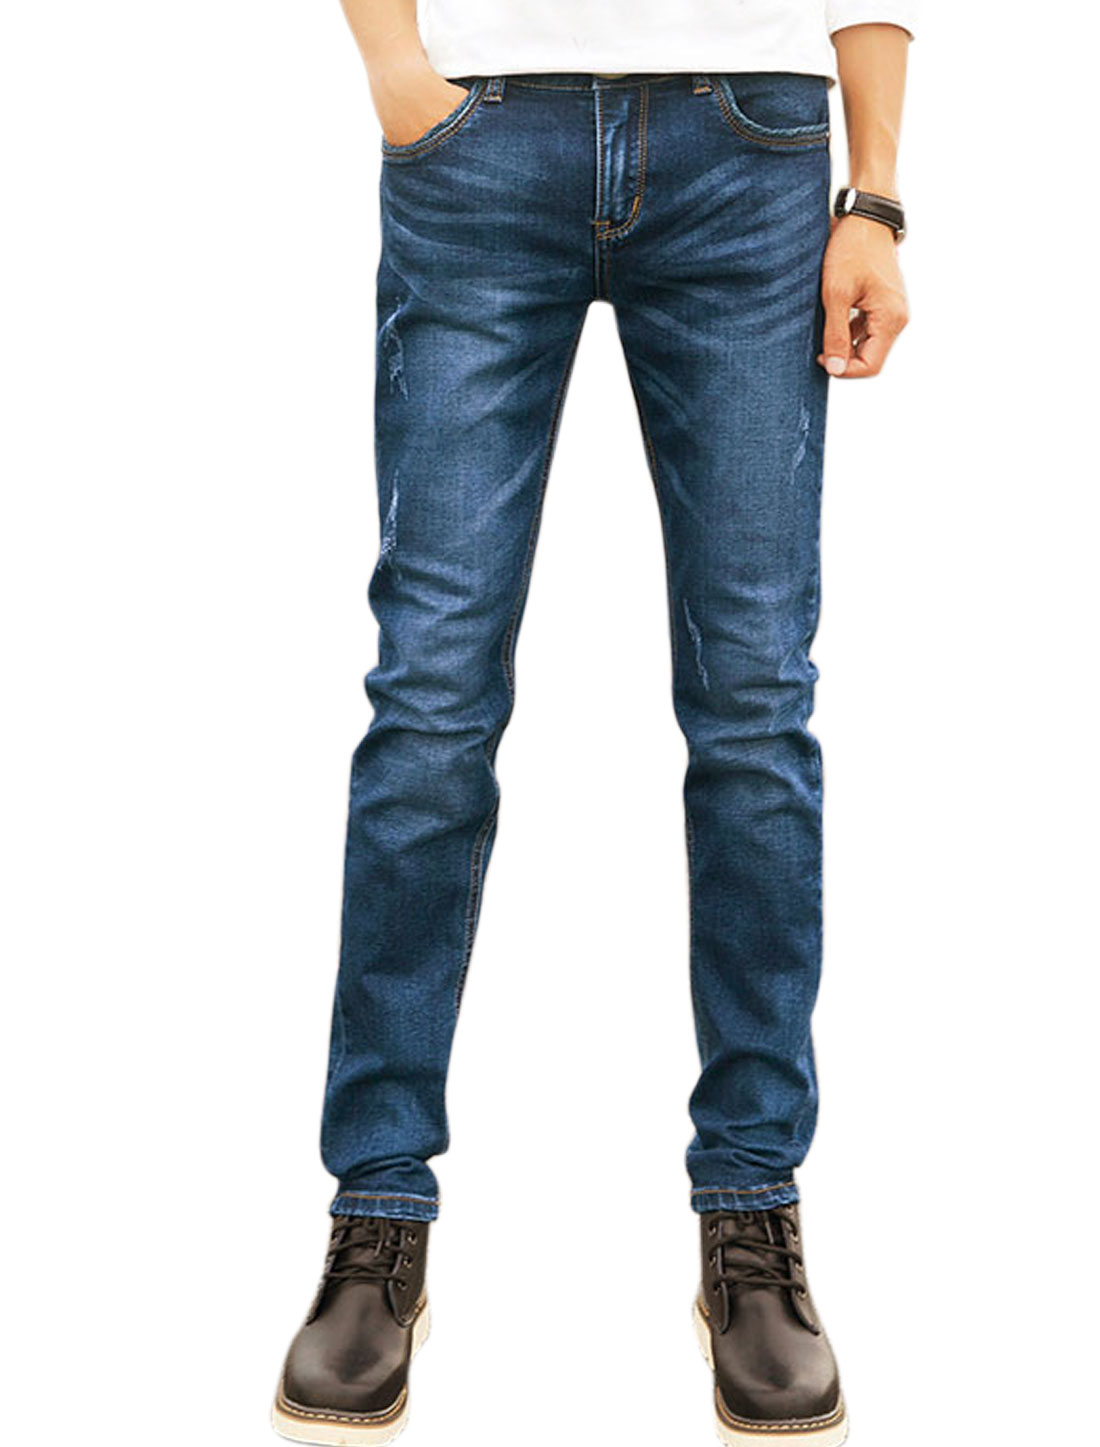 Men Slants Pockets Distressed Slim Fit Denim Pants Blue W34